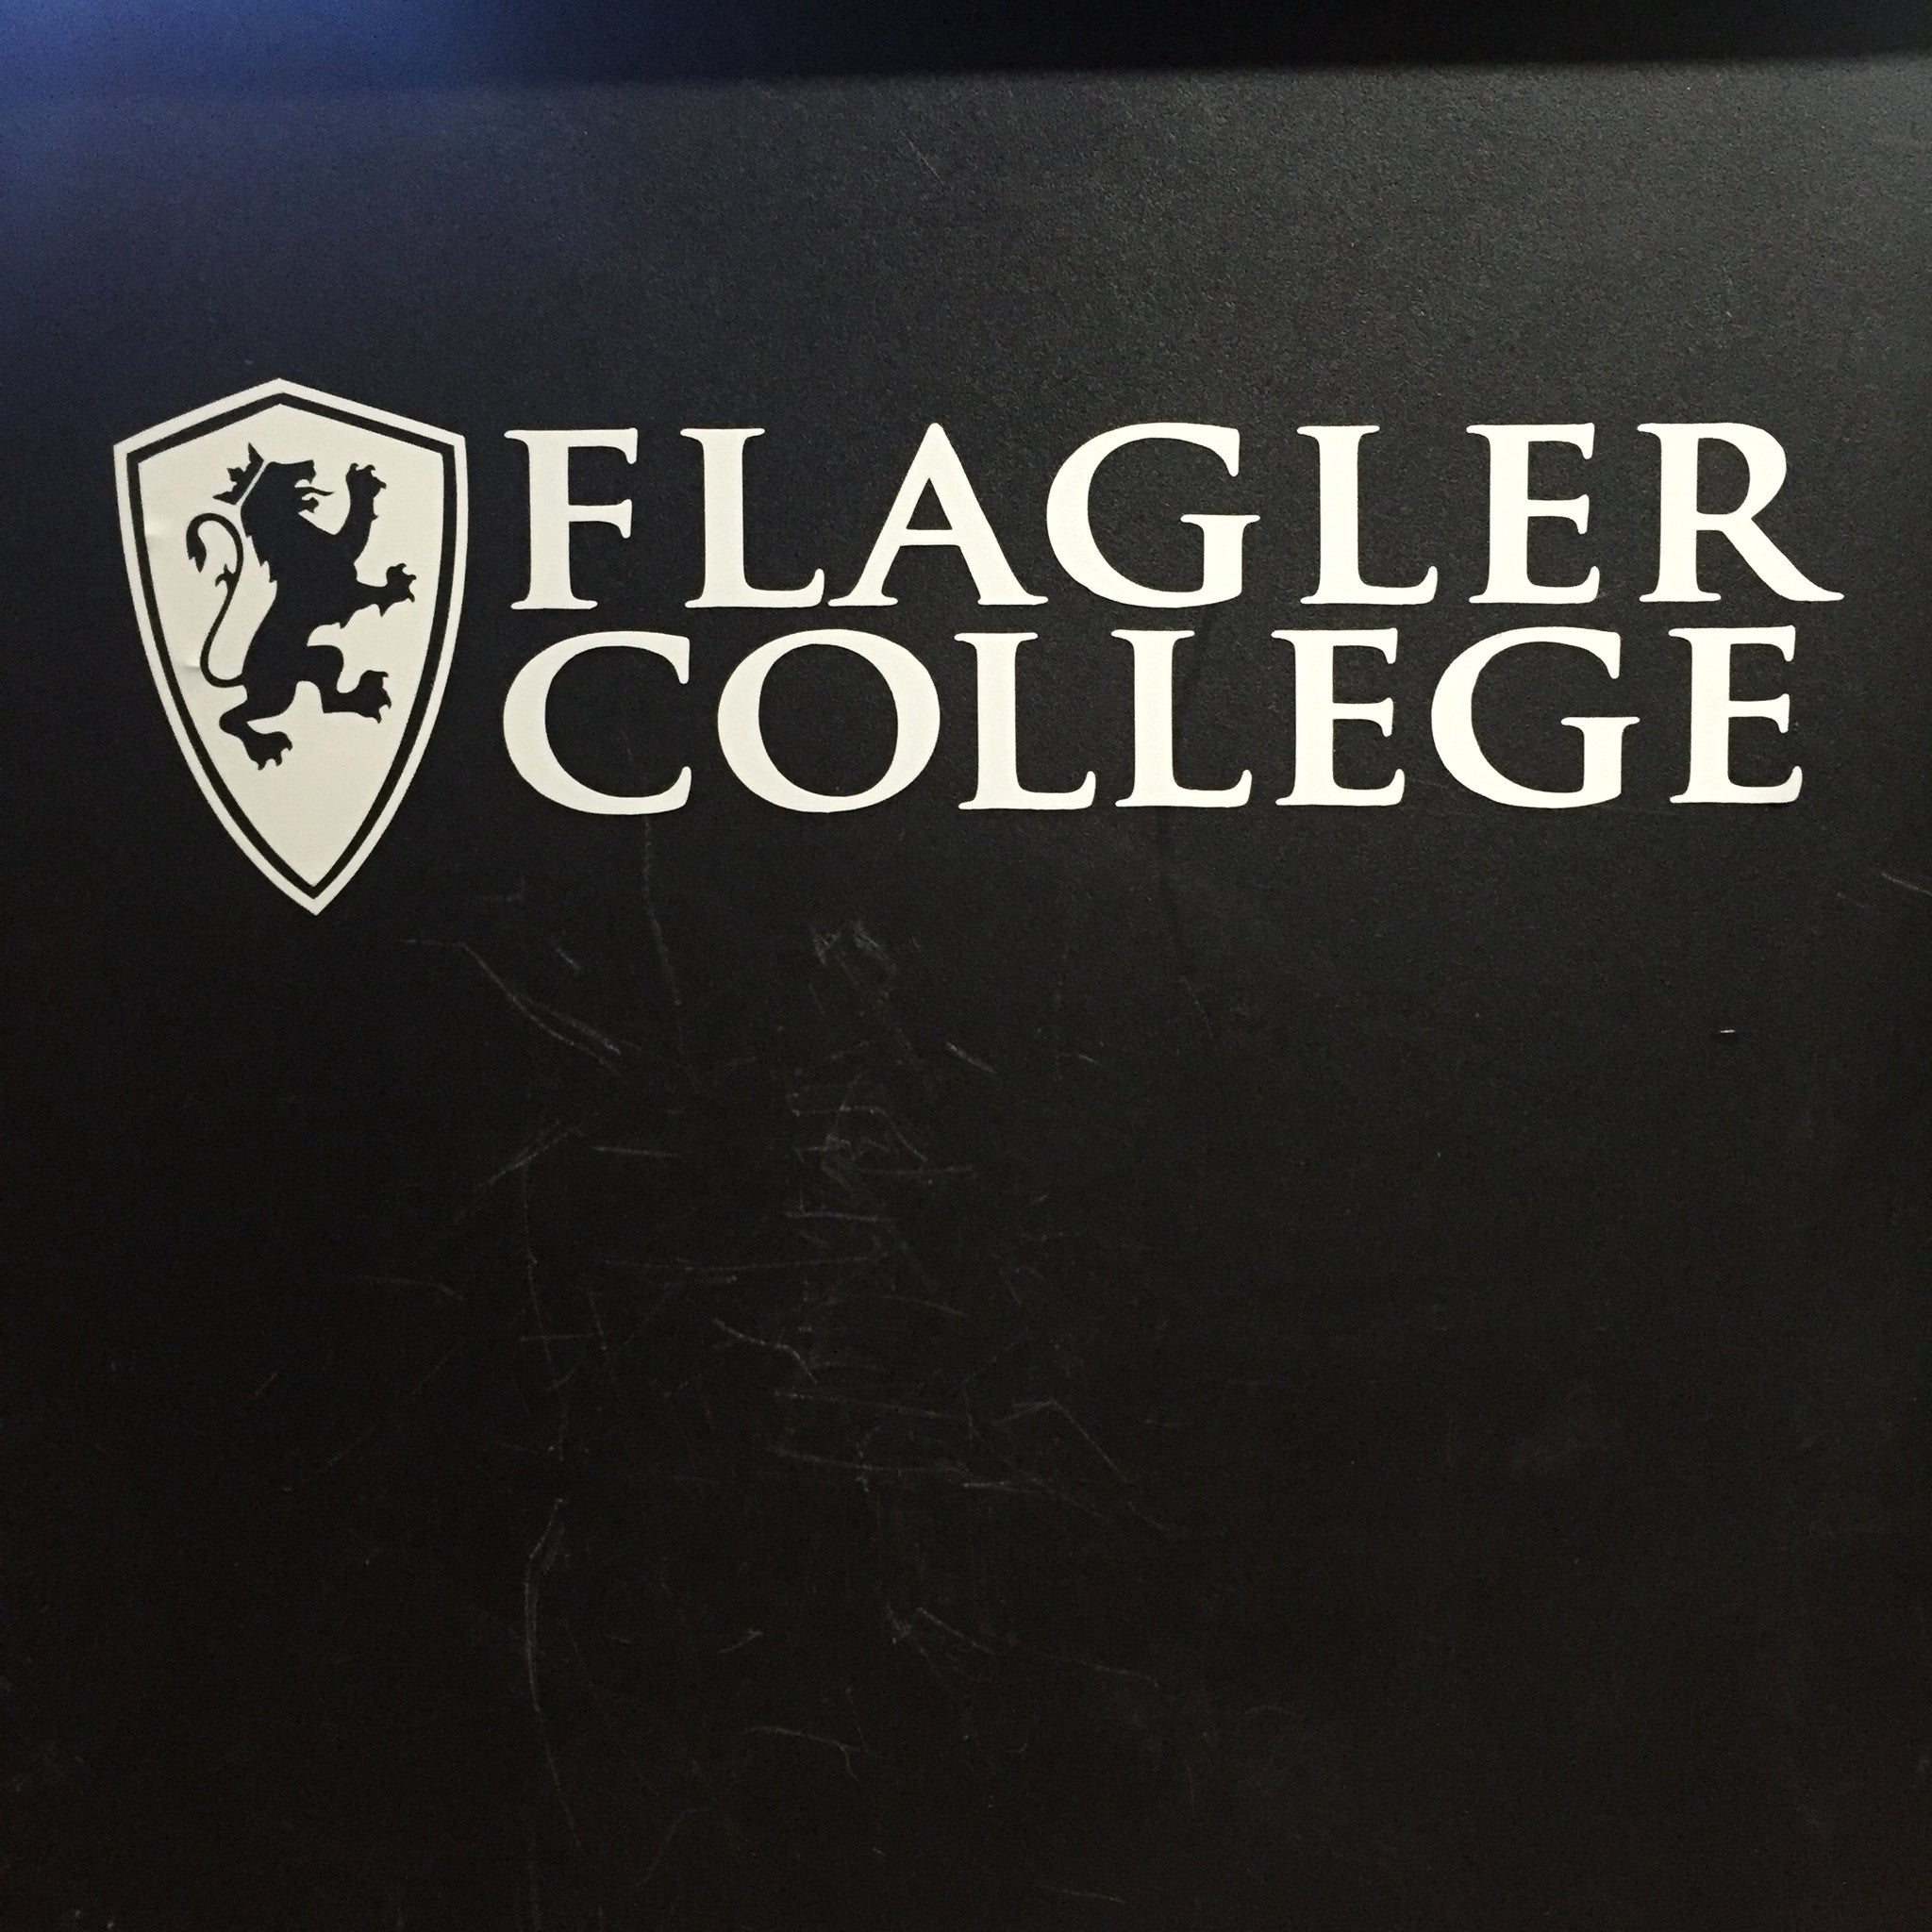 White Flagler college and shield decal